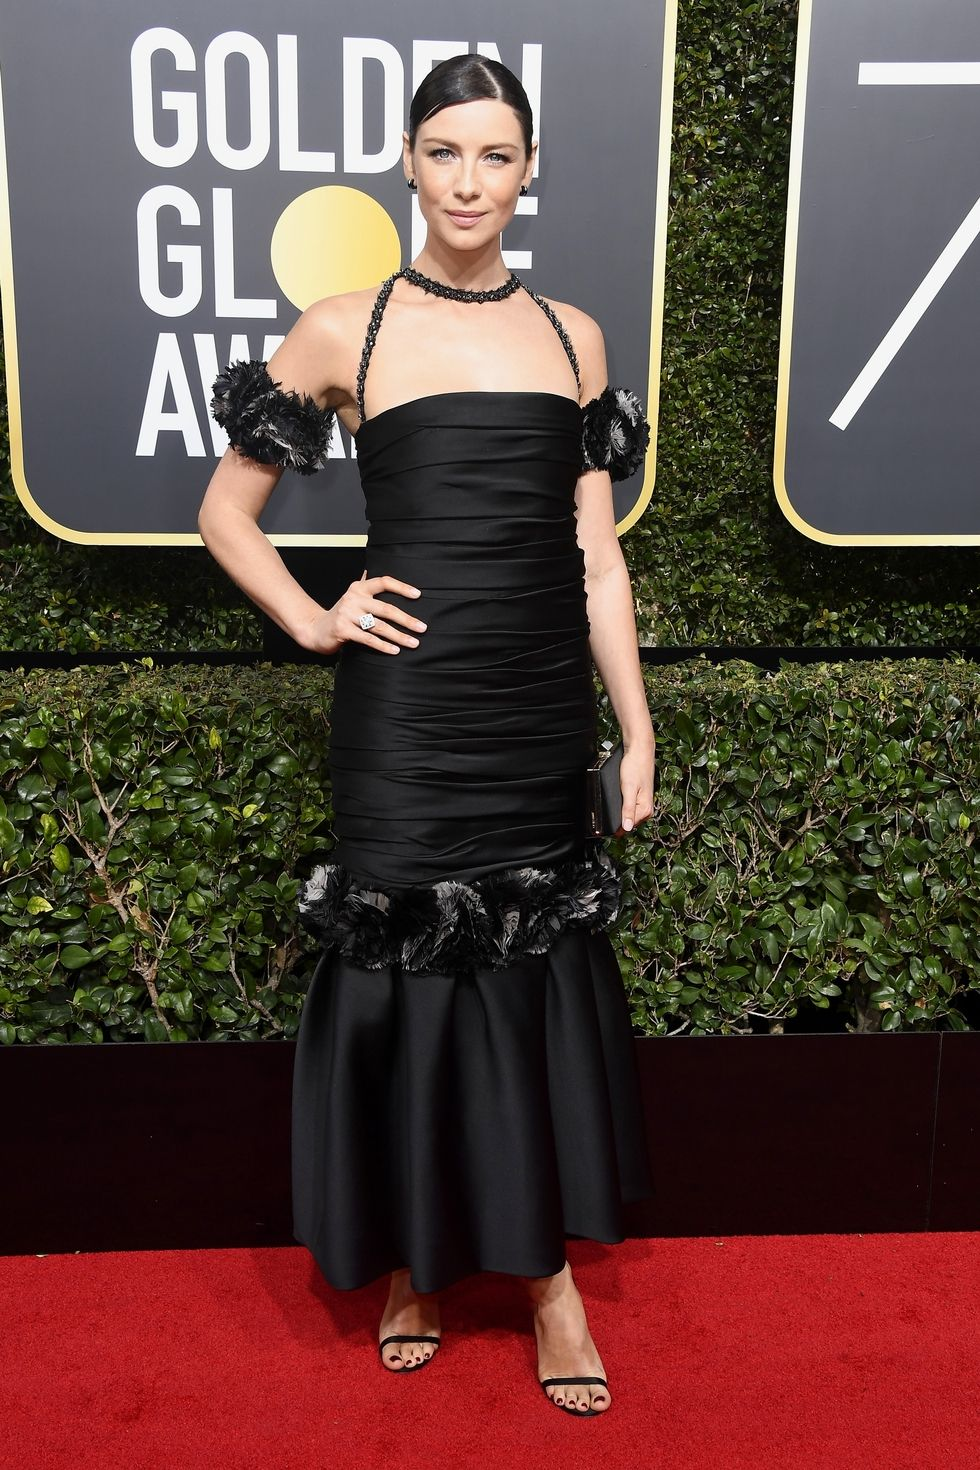 hbz-the-list-golden-globes-2018-caitriona-balfe-1515378043